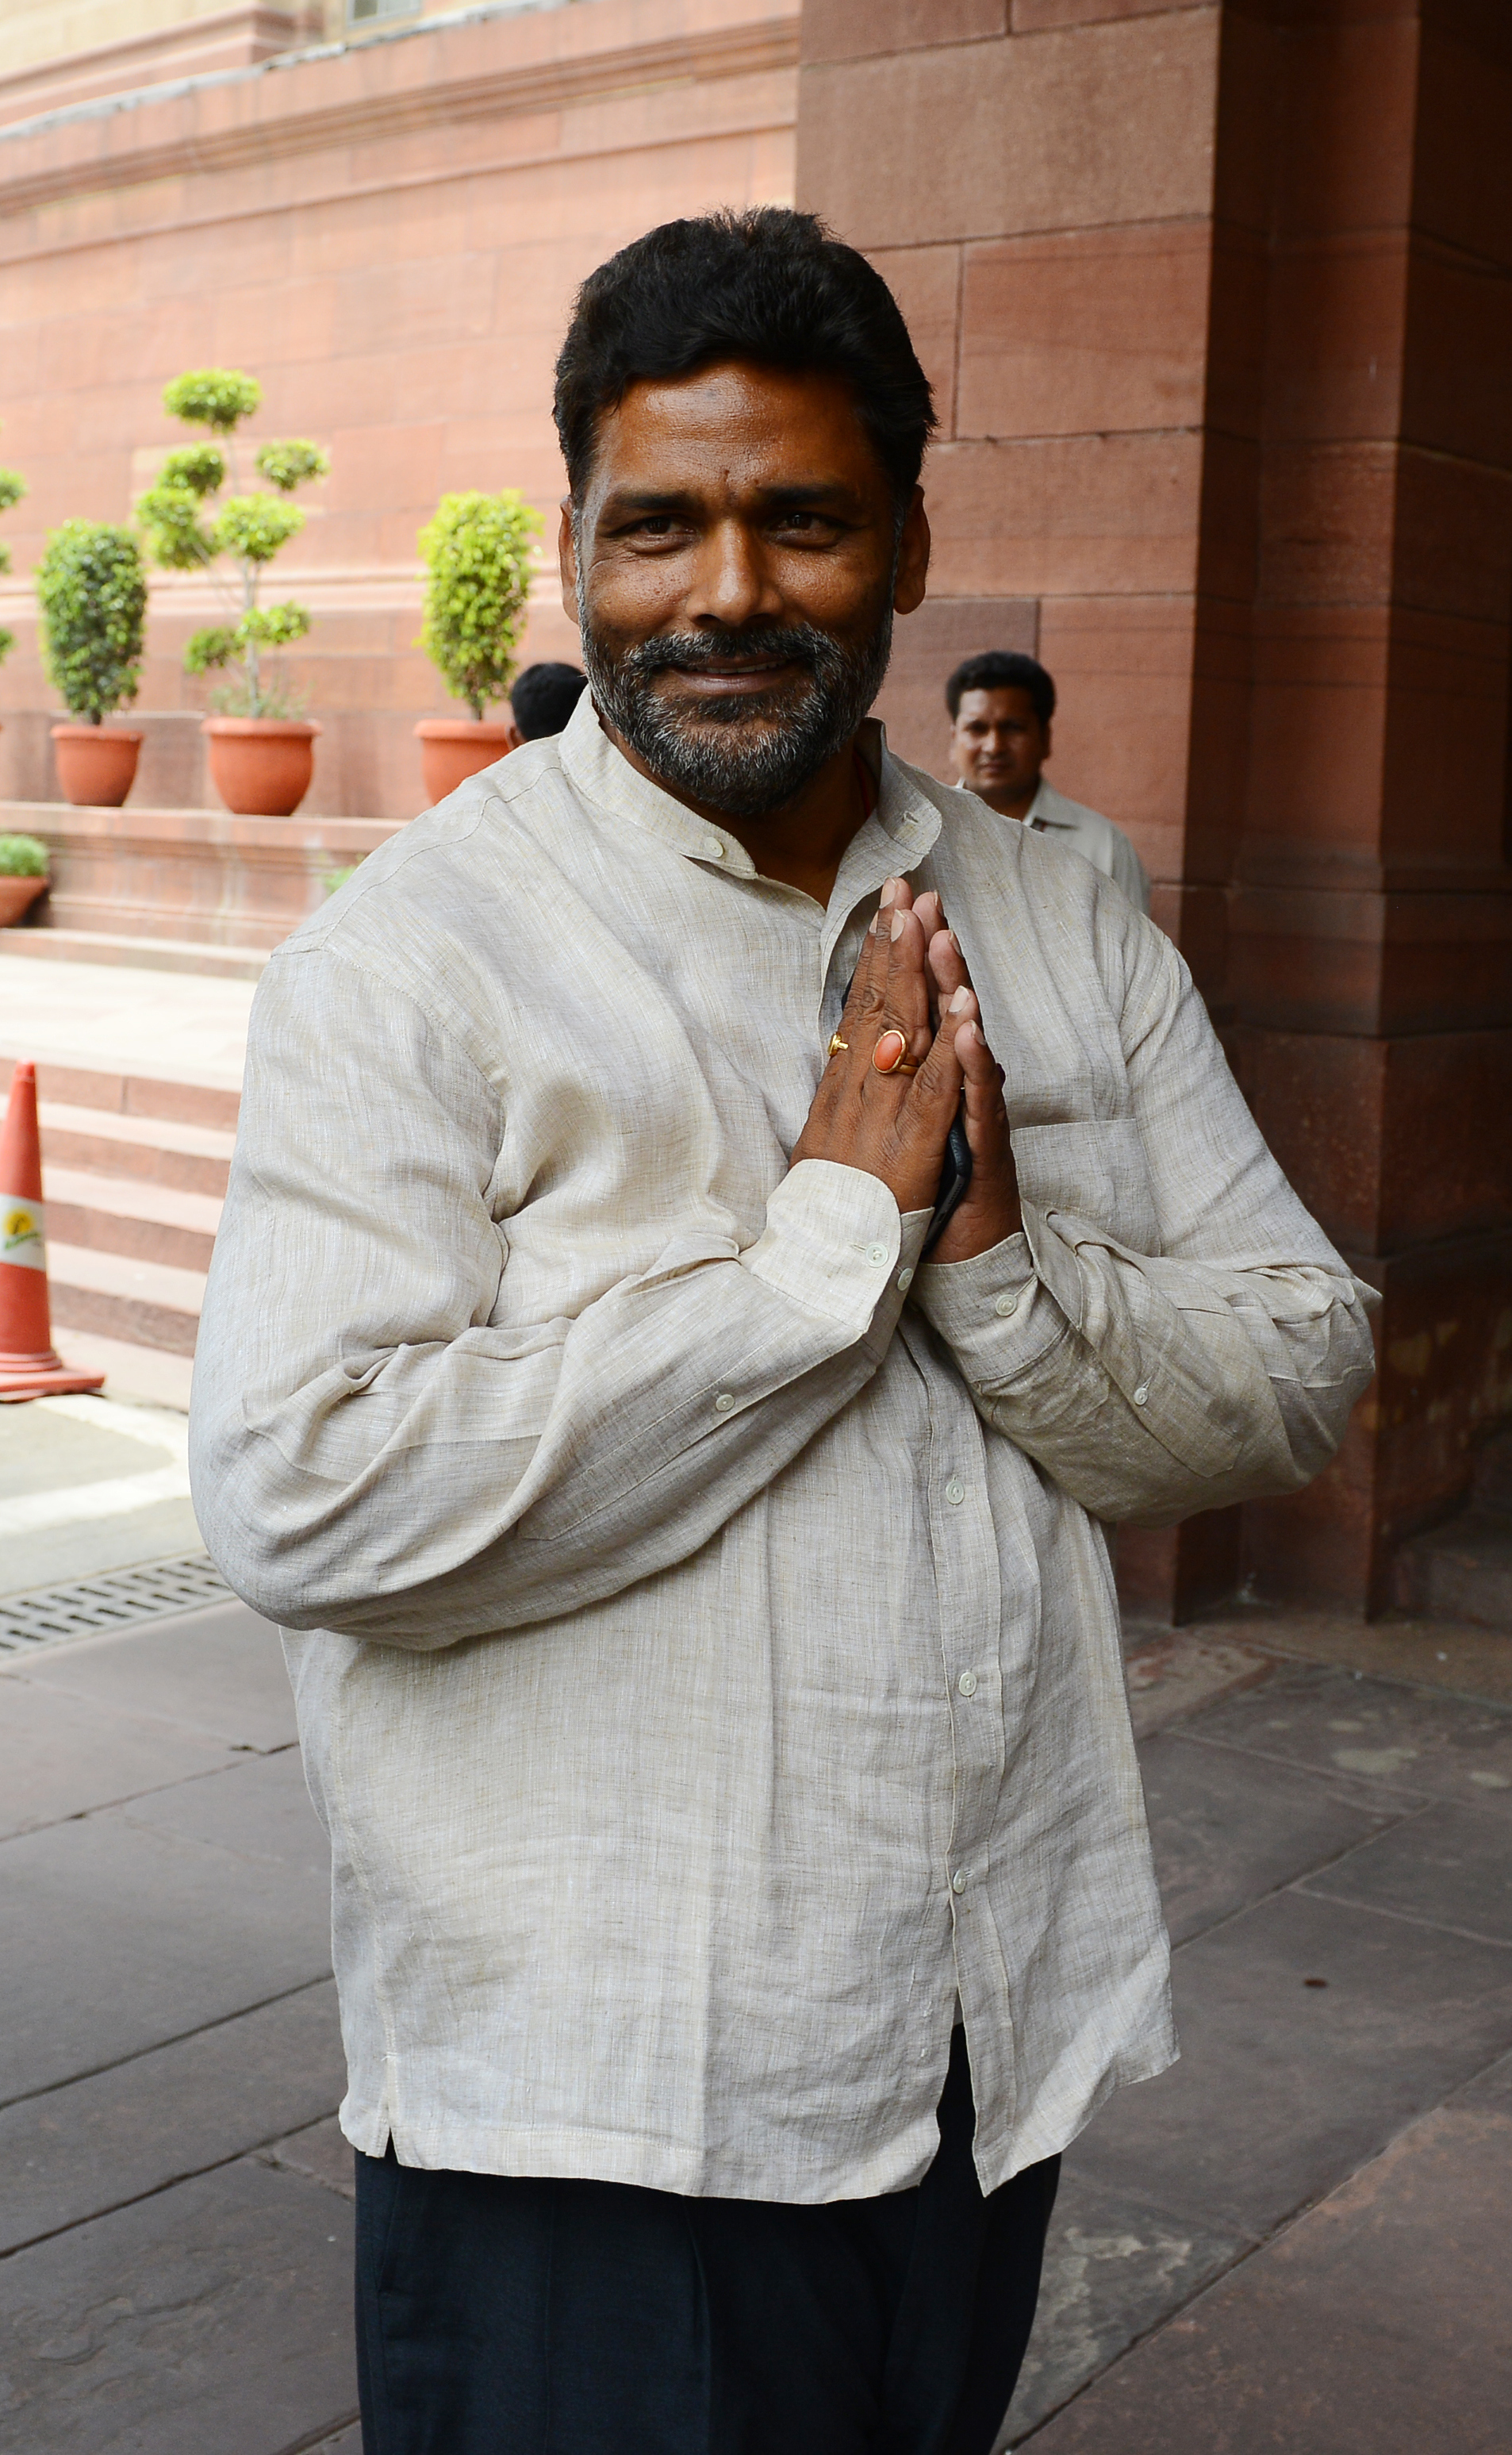 MP Pappu Yadav during the budget session at Parliament House in New Delhi.